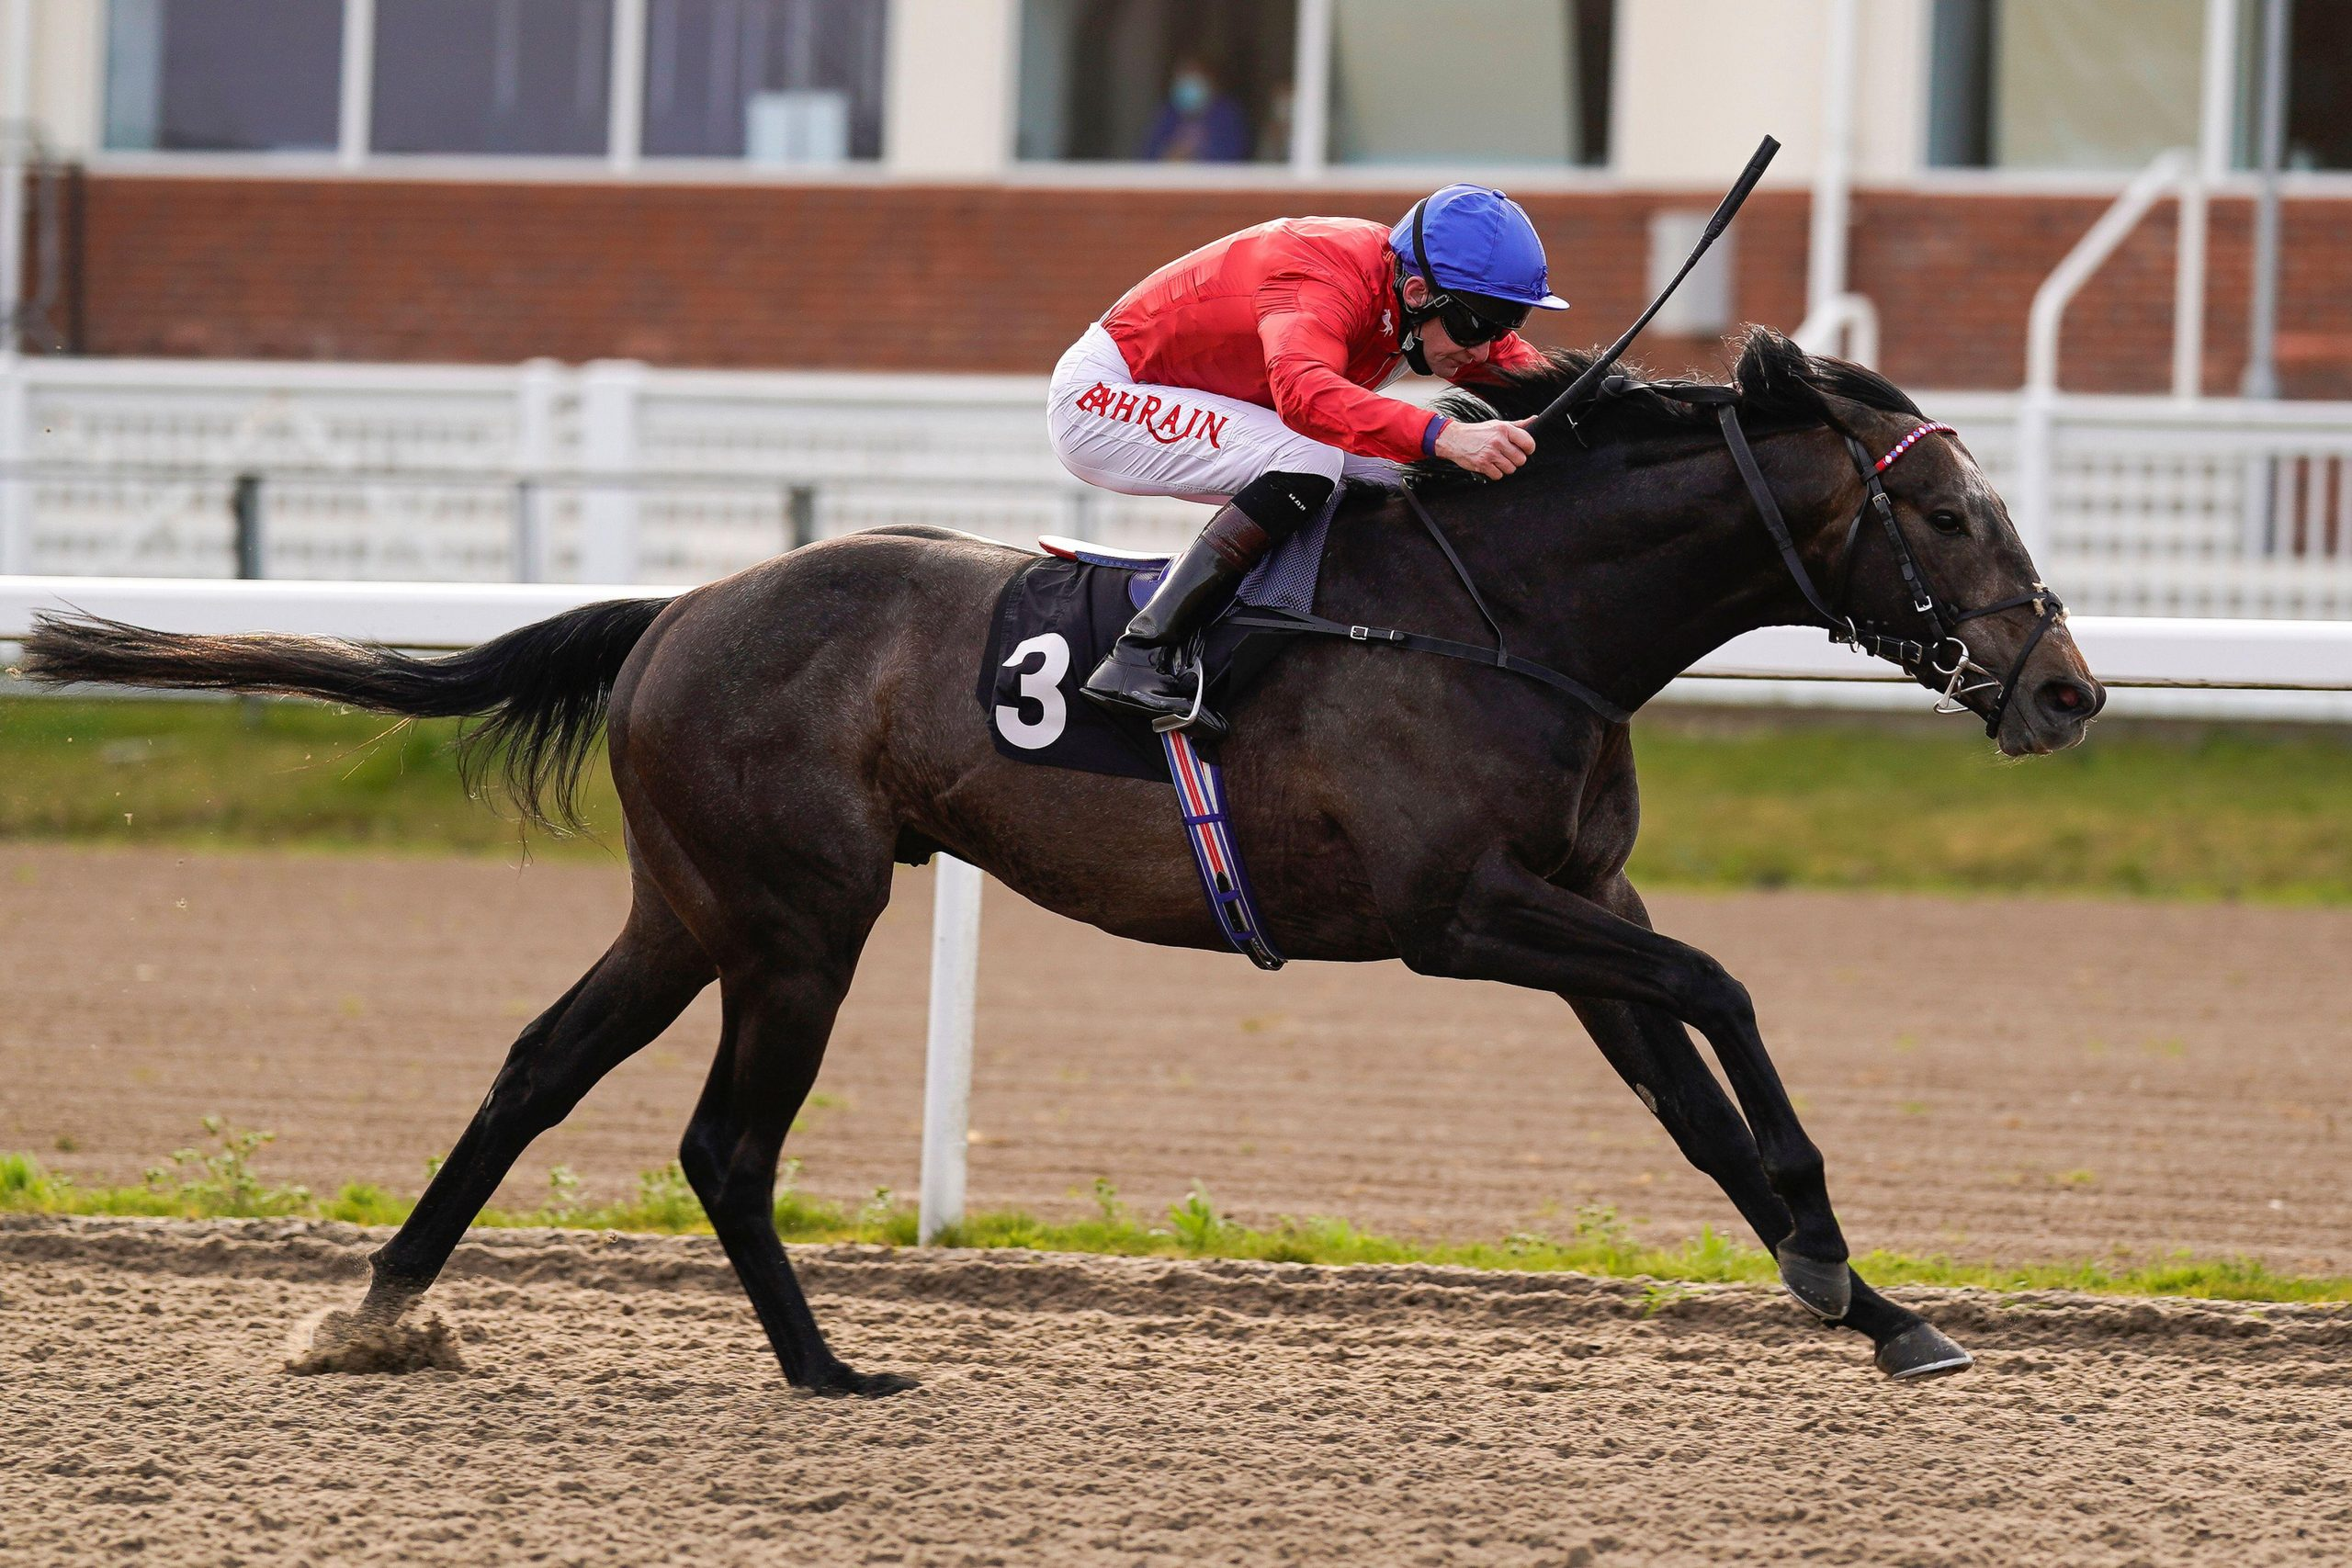 Robert Havlin riding Fundamental winning The Woodford Reserve Cardinal Conditions Stakes at Chelmsford City Racecourse. Picture date: Thursday April 1, 2021.